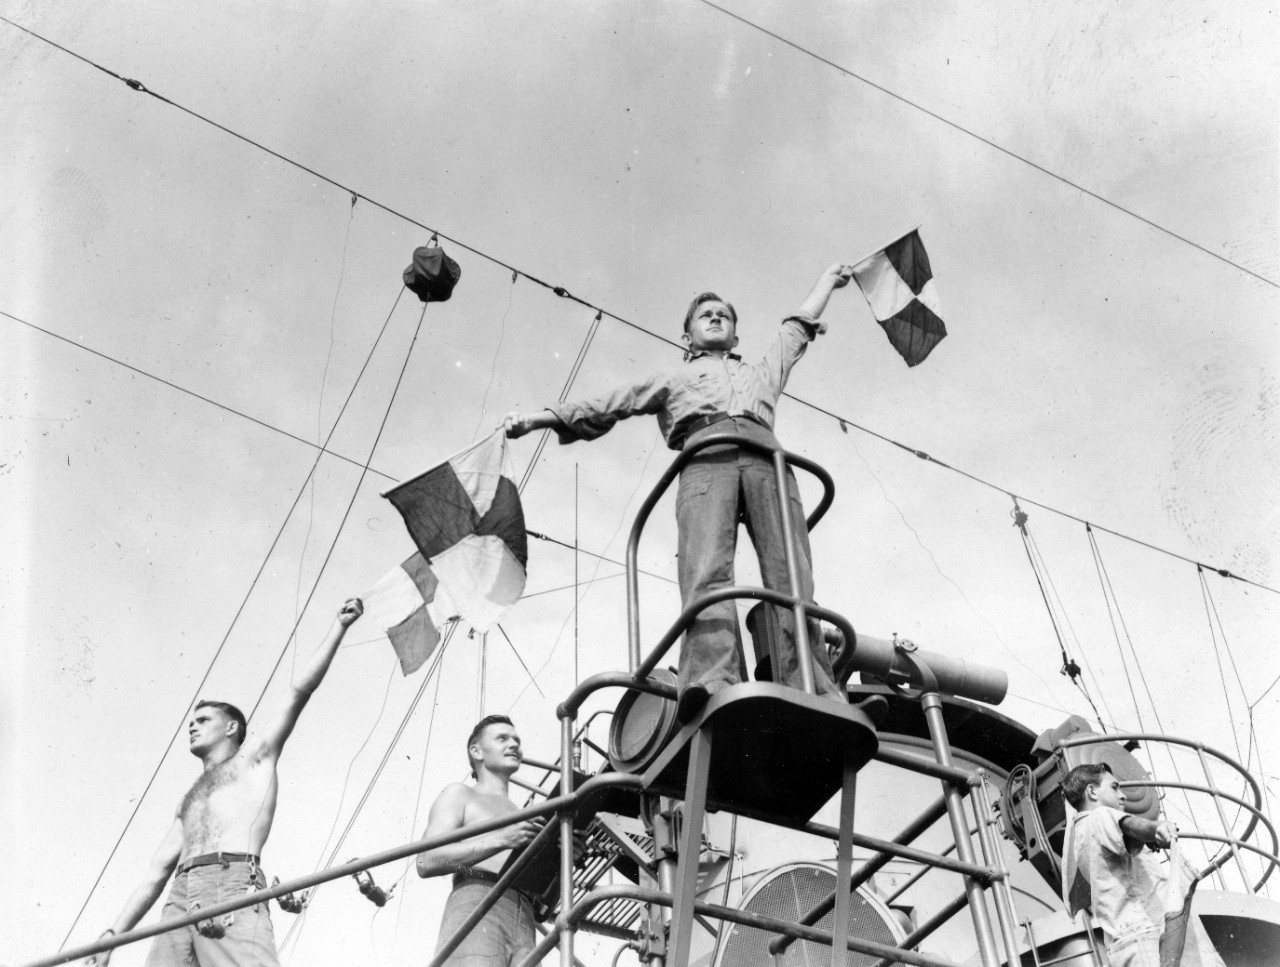 64 photographs related to the naval service of George H. Dunn aboard the USS Cebu (ARG-6) circa 1944-1945. Subject matter of the collection consists of images related to various rooms aboard USS Cebu (laundry, mess, offices, shops, etc.); ship's signalman working with semaphore flags; religious services, music concert, cargo handling; ceremonies; and other onboard activities and crewmembers. There are several good images of officers and crew in formal settings; and are likely organized by the various divisions. Also included are several images of cooks preparing meals, the mess compartment and serving line. Several views include liberty activities on a southern or western Pacific island (buildings, dancing, tug-of-war, drinking beer, etc.).There are item level descriptions for each image in the collection available. Several images from the collection have been given item level numbers from the NH series (NH 106232-NH 106327).